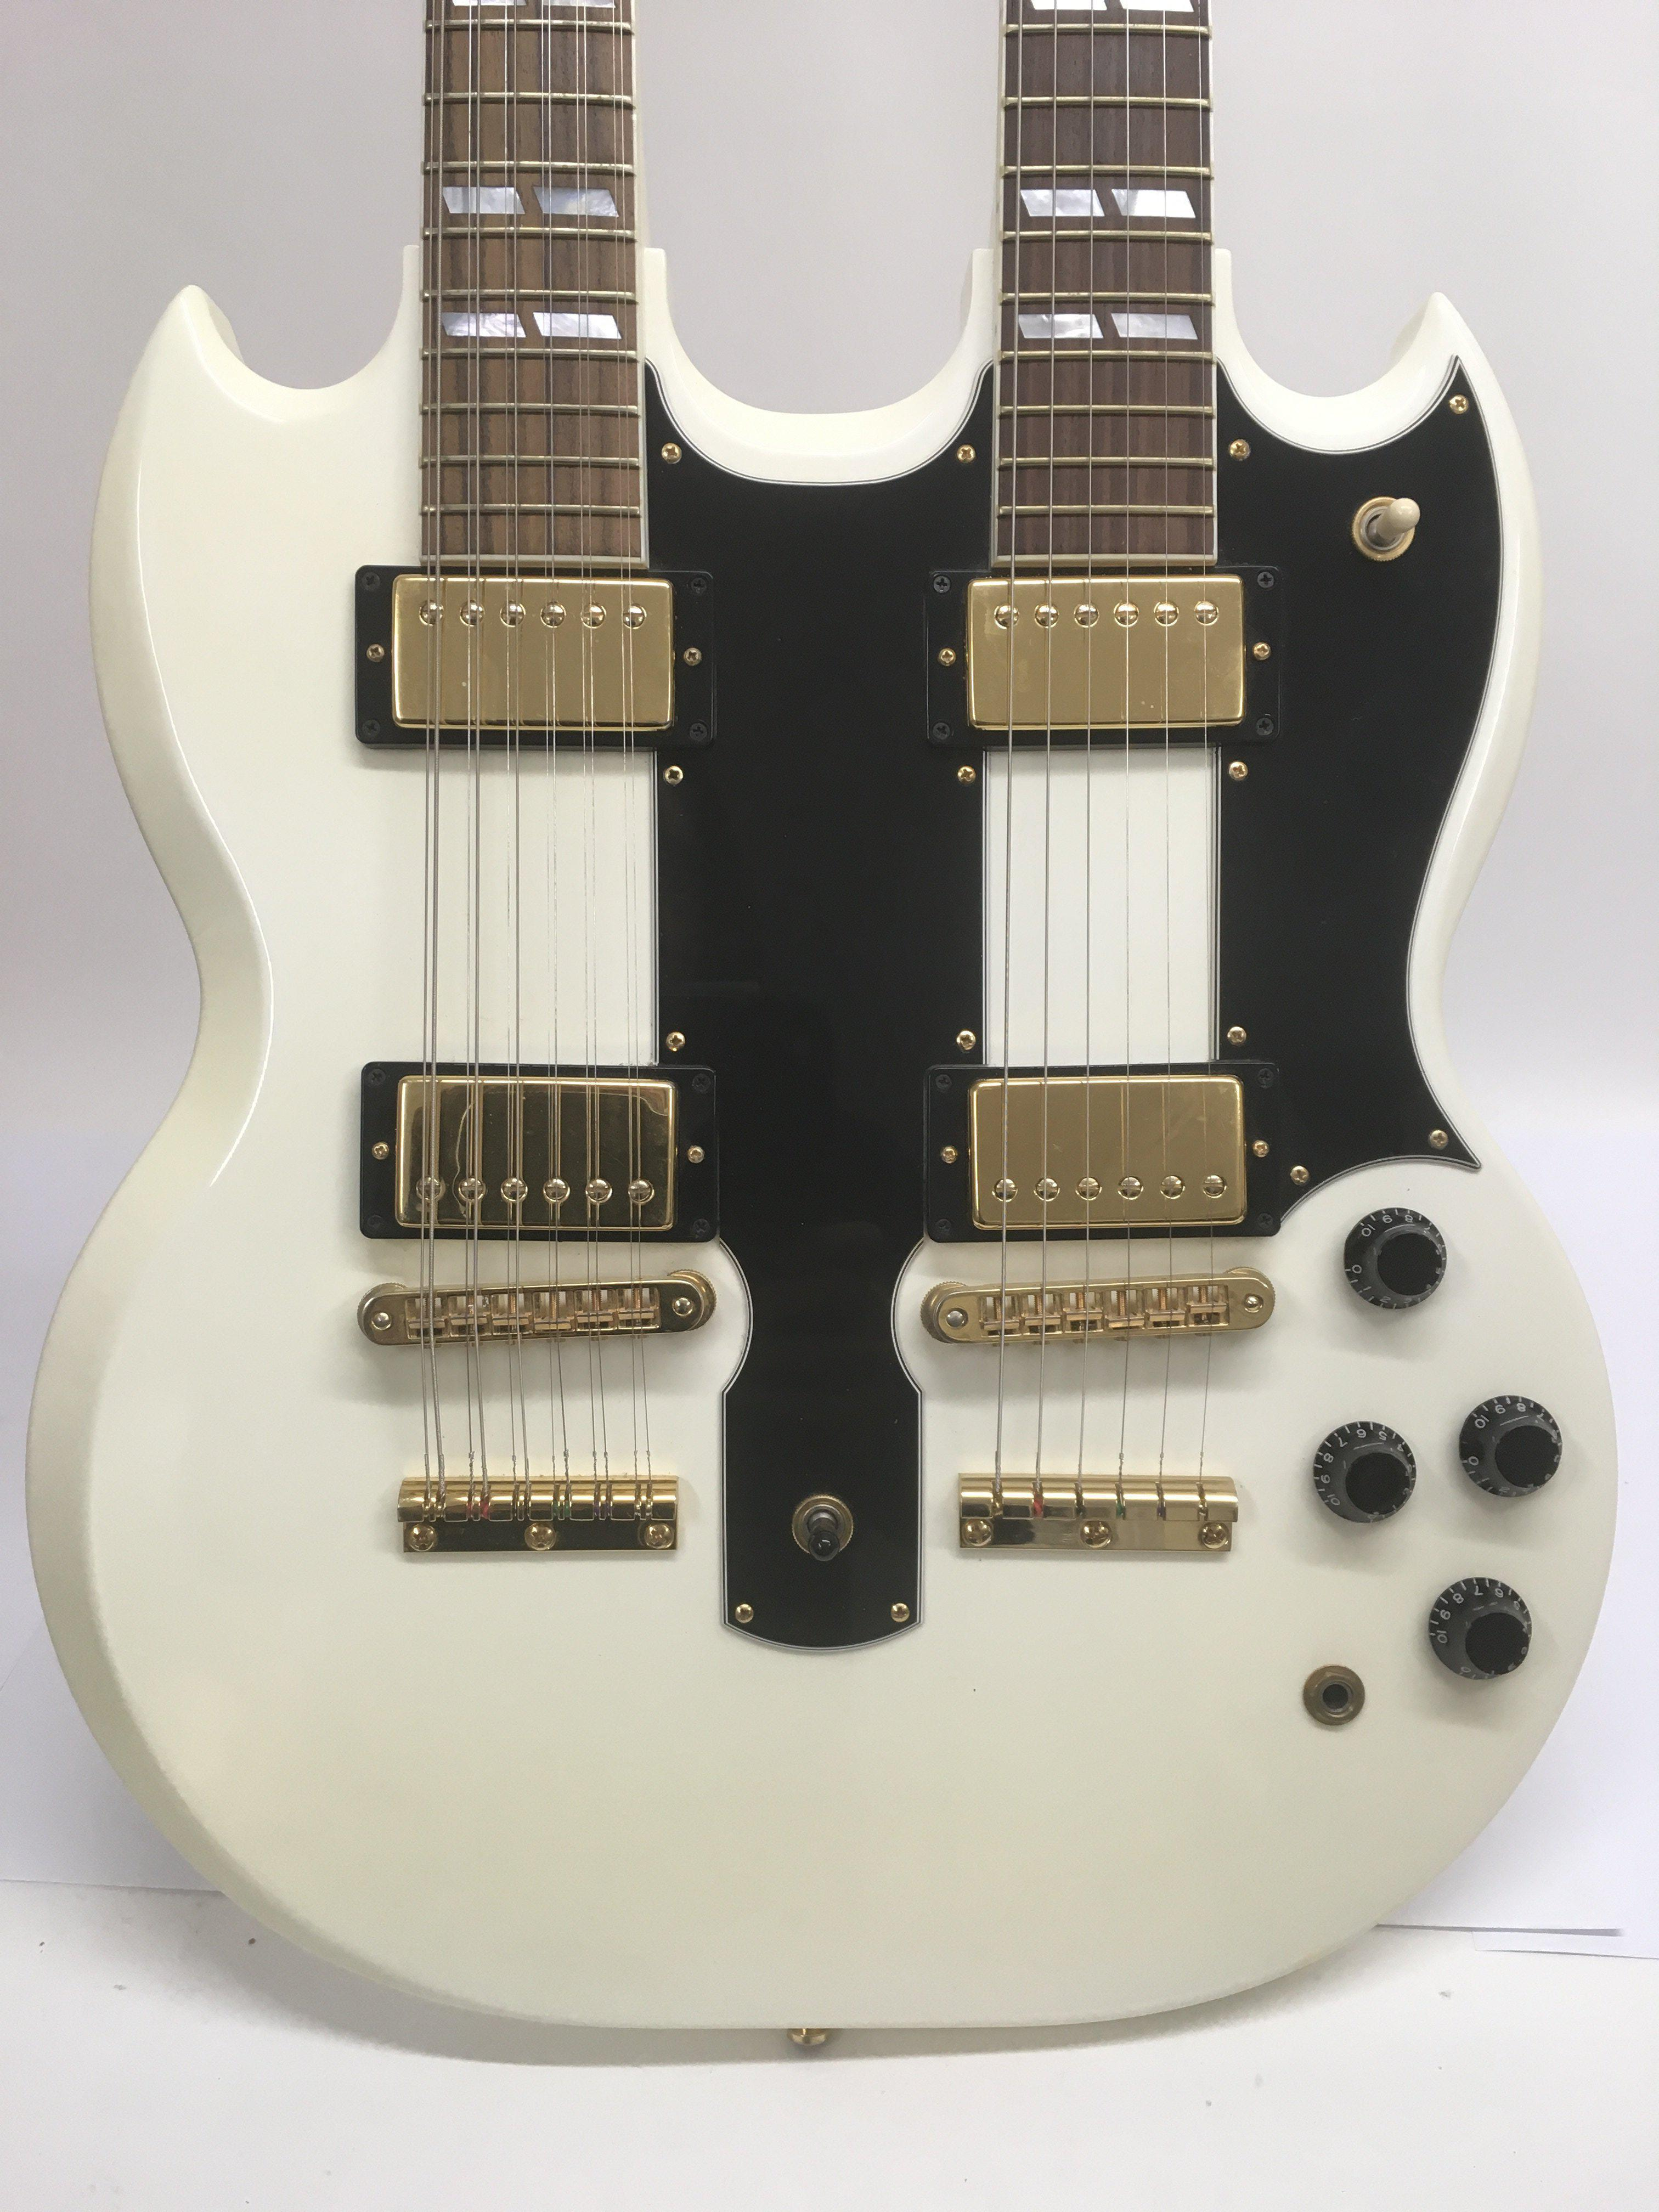 A Gibson double neck 6 and 12 string electric guit - Image 2 of 7